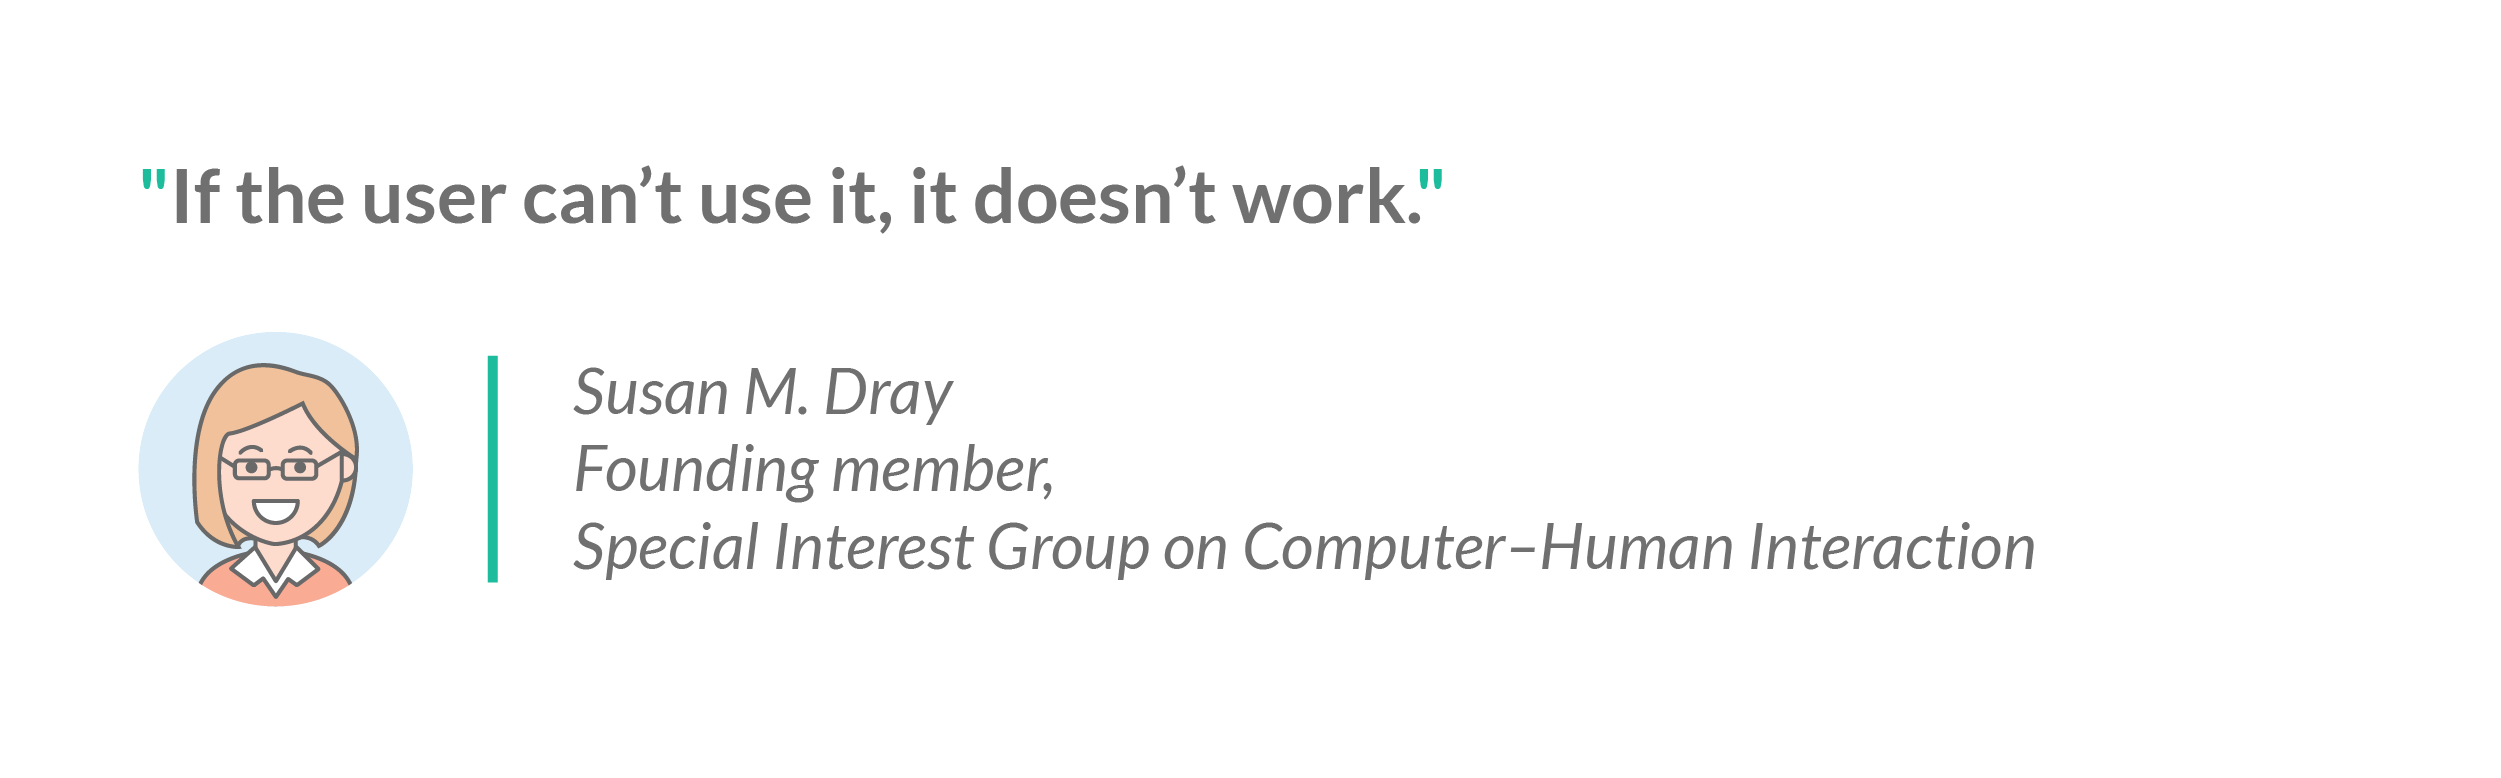 "A quote from Susan Dray of the Special Interest Group on Computer-Human Interaction: ""If the user can't use it, it doesn't work"""